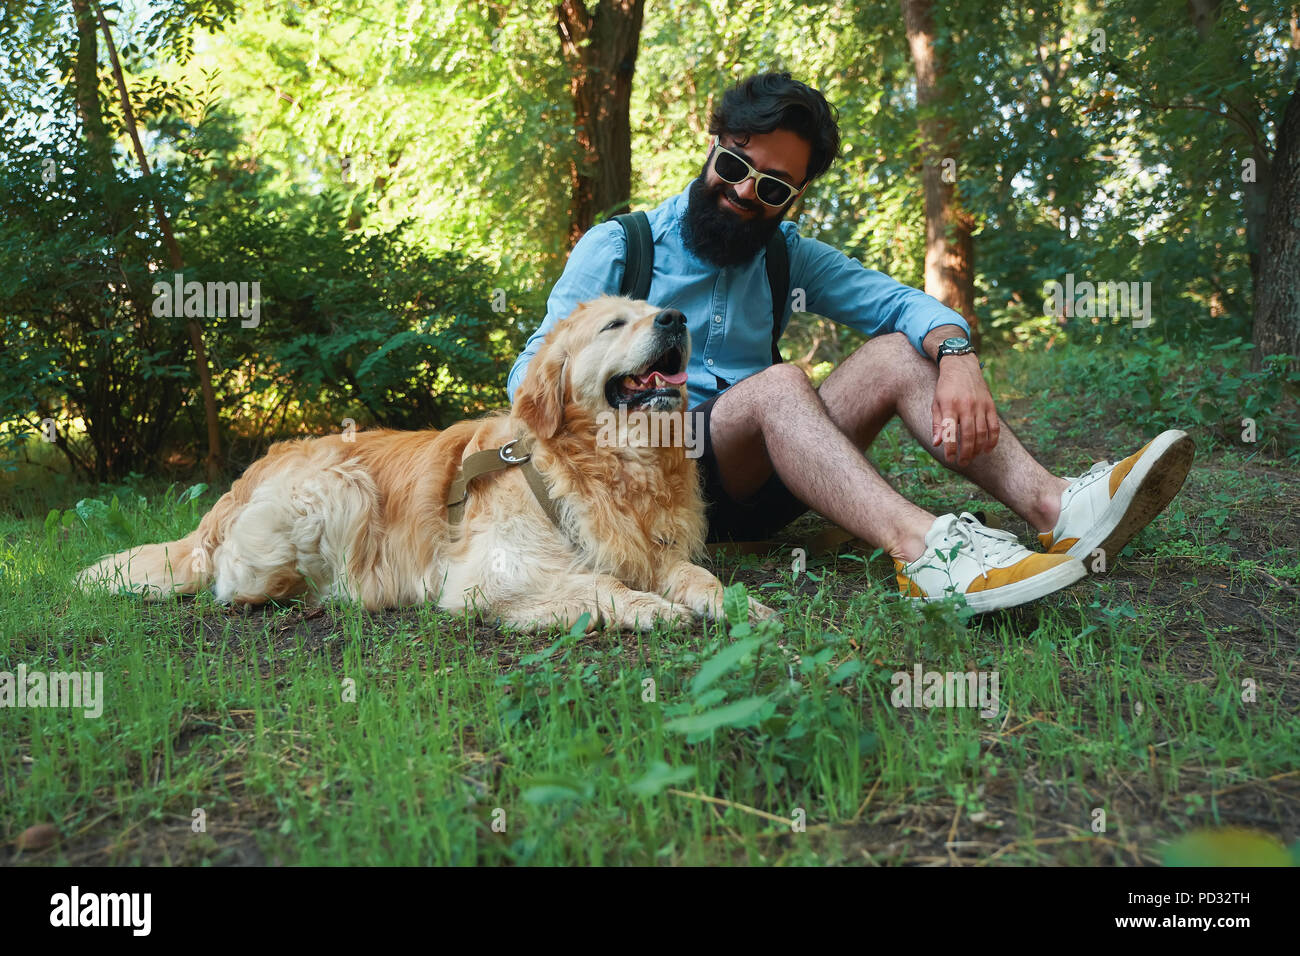 Man with beard and his small yellow dog playing and enjoying sun - Stock Image